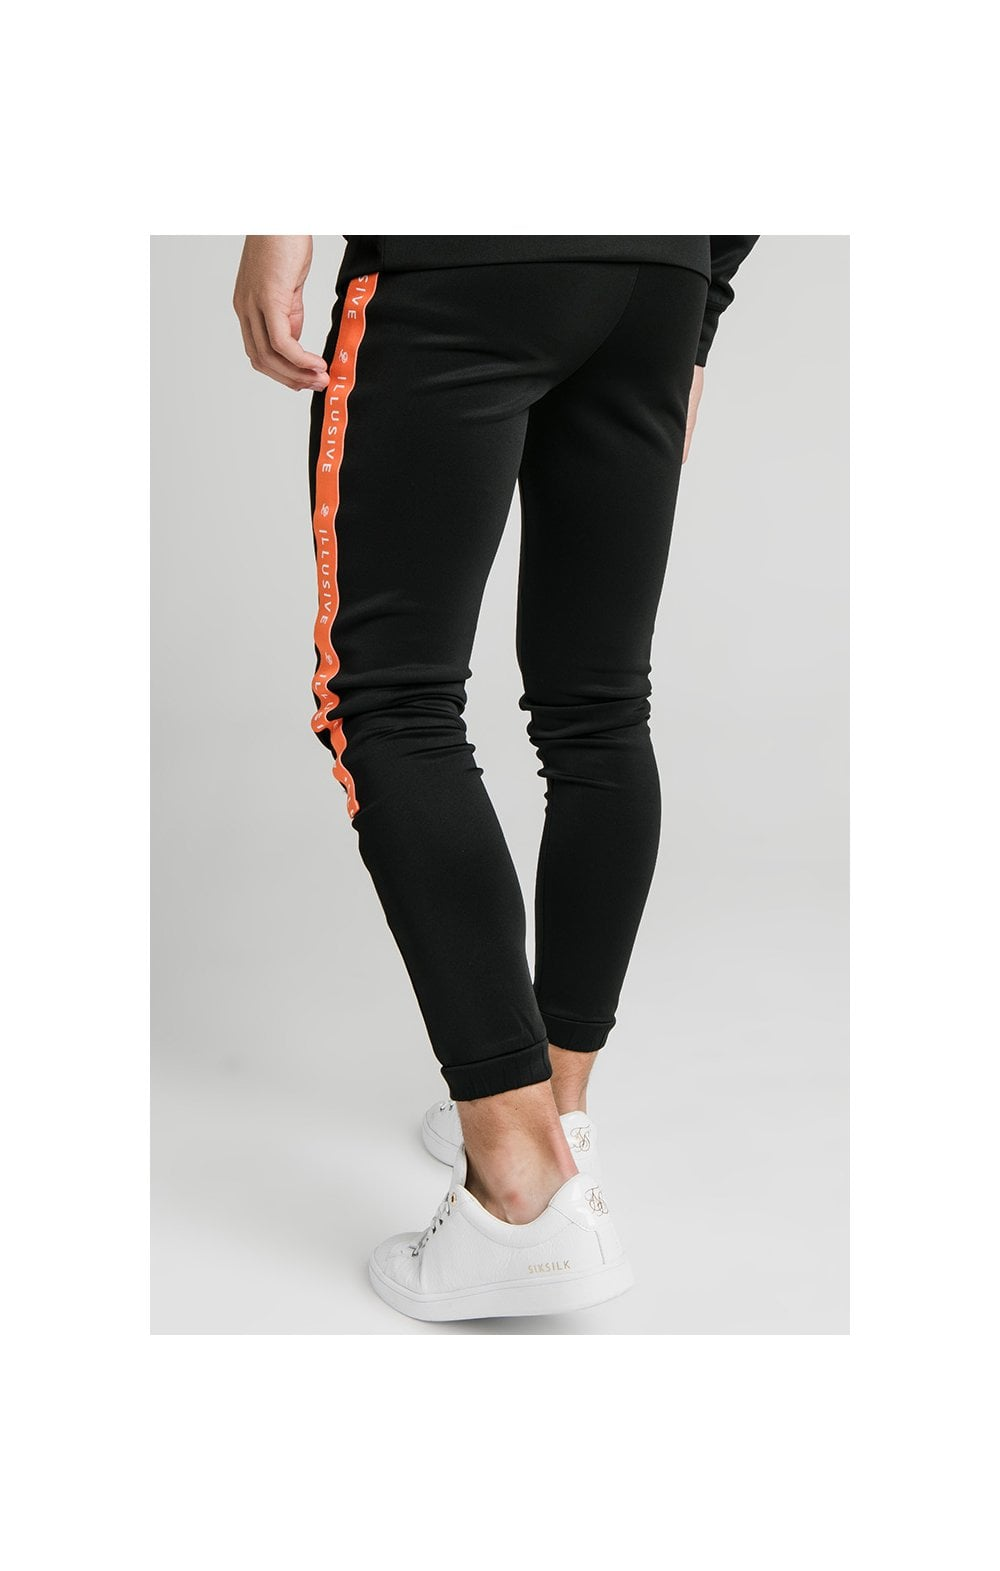 Load image into Gallery viewer, Illusive London Tape Joggers - Black (6)